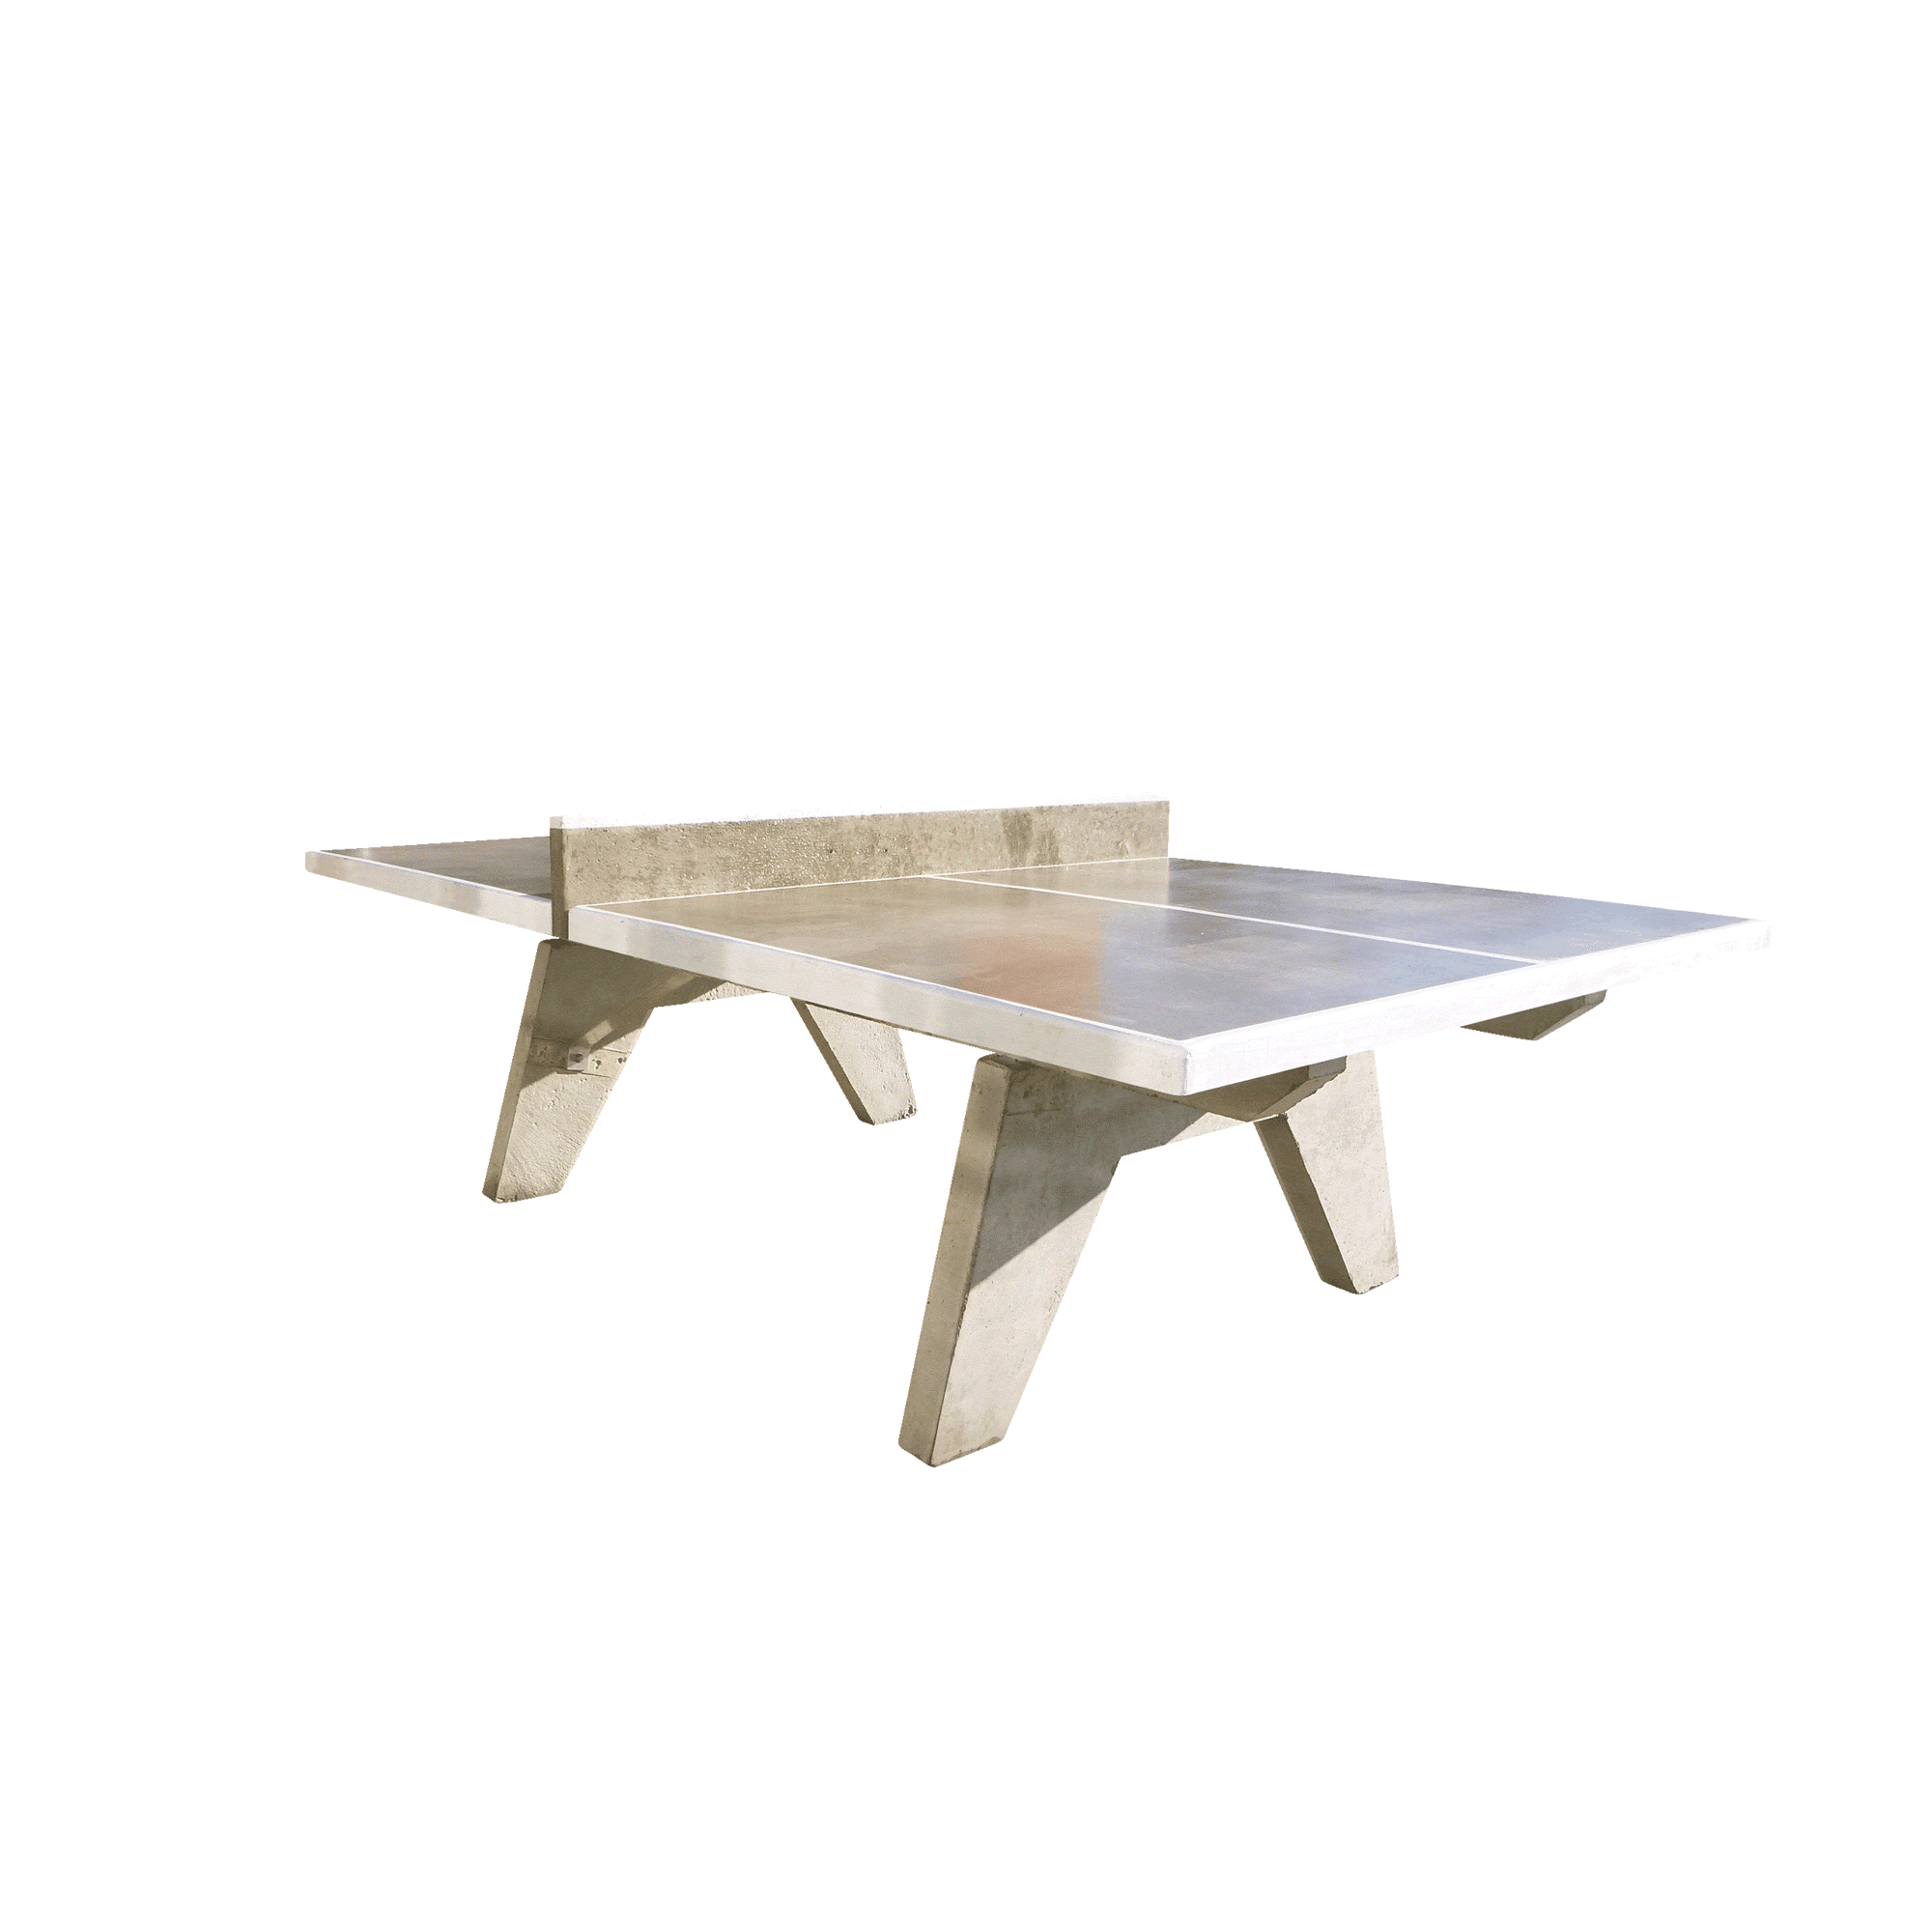 Concrete Table Tennis Table College Model Playground